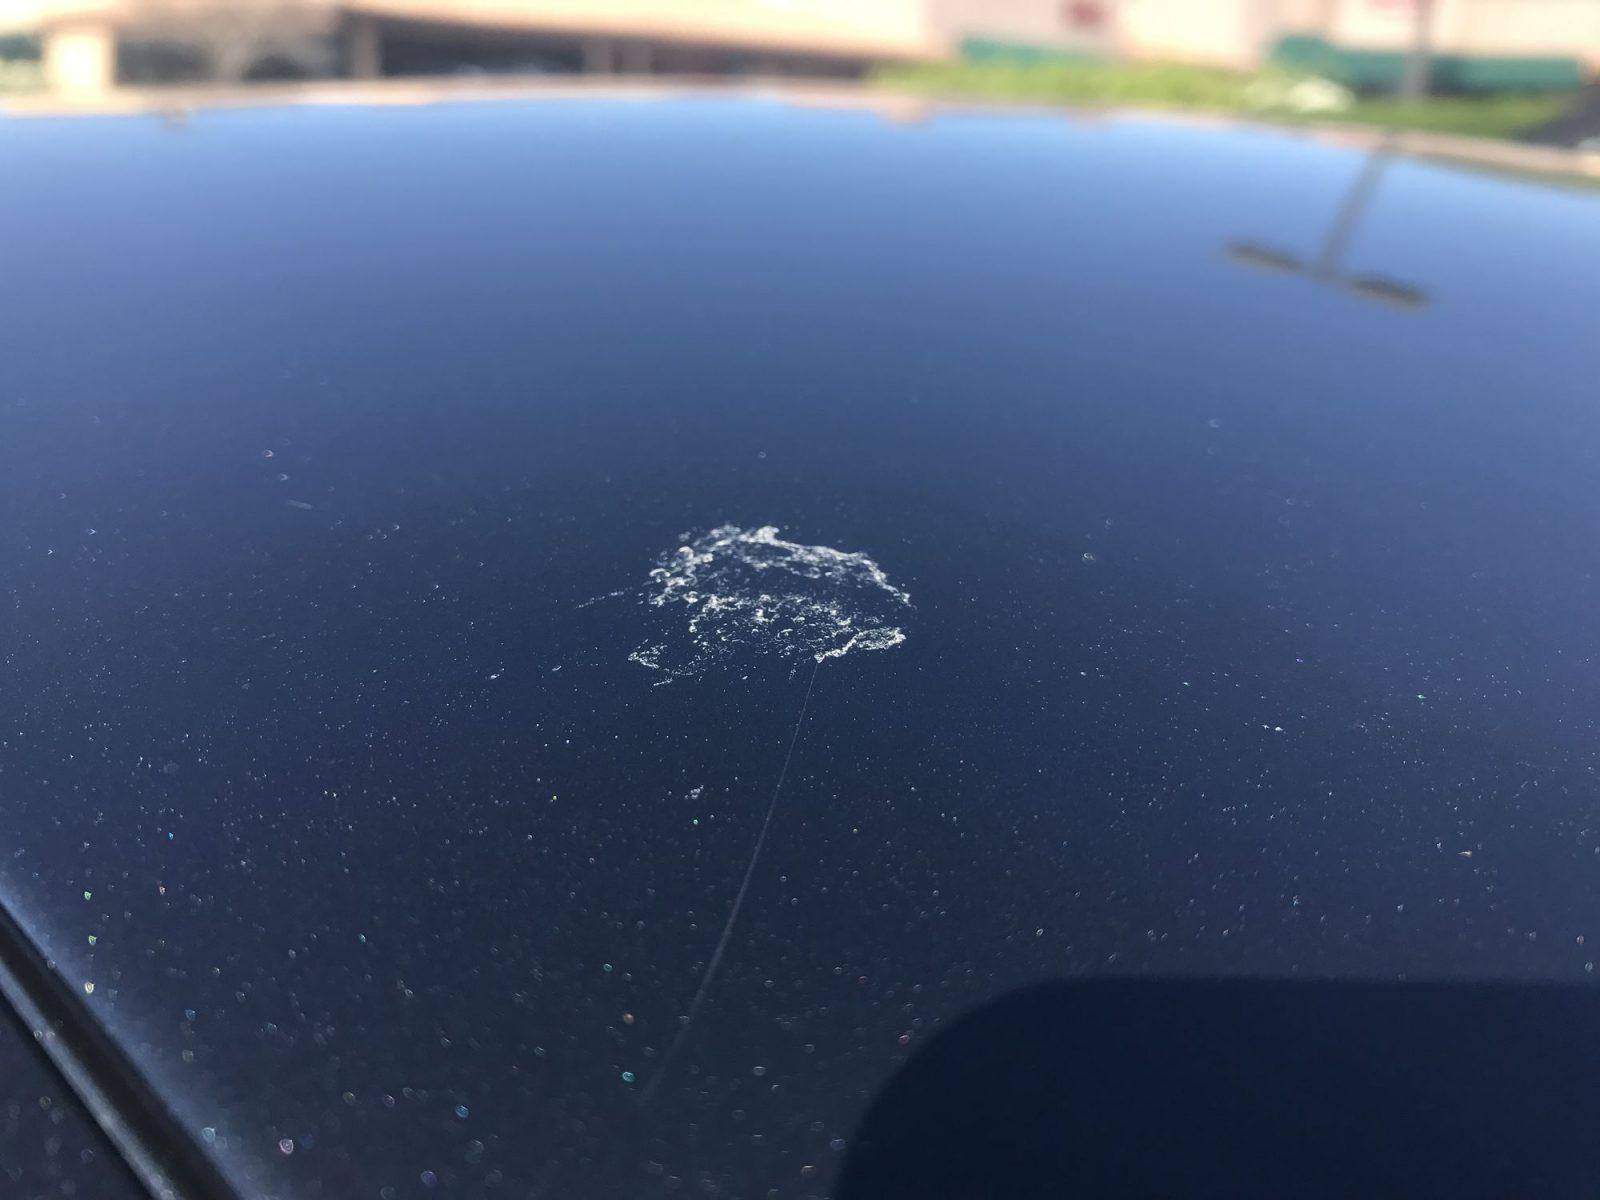 Bird Poop On Car How To Recover The Car Paint Damage